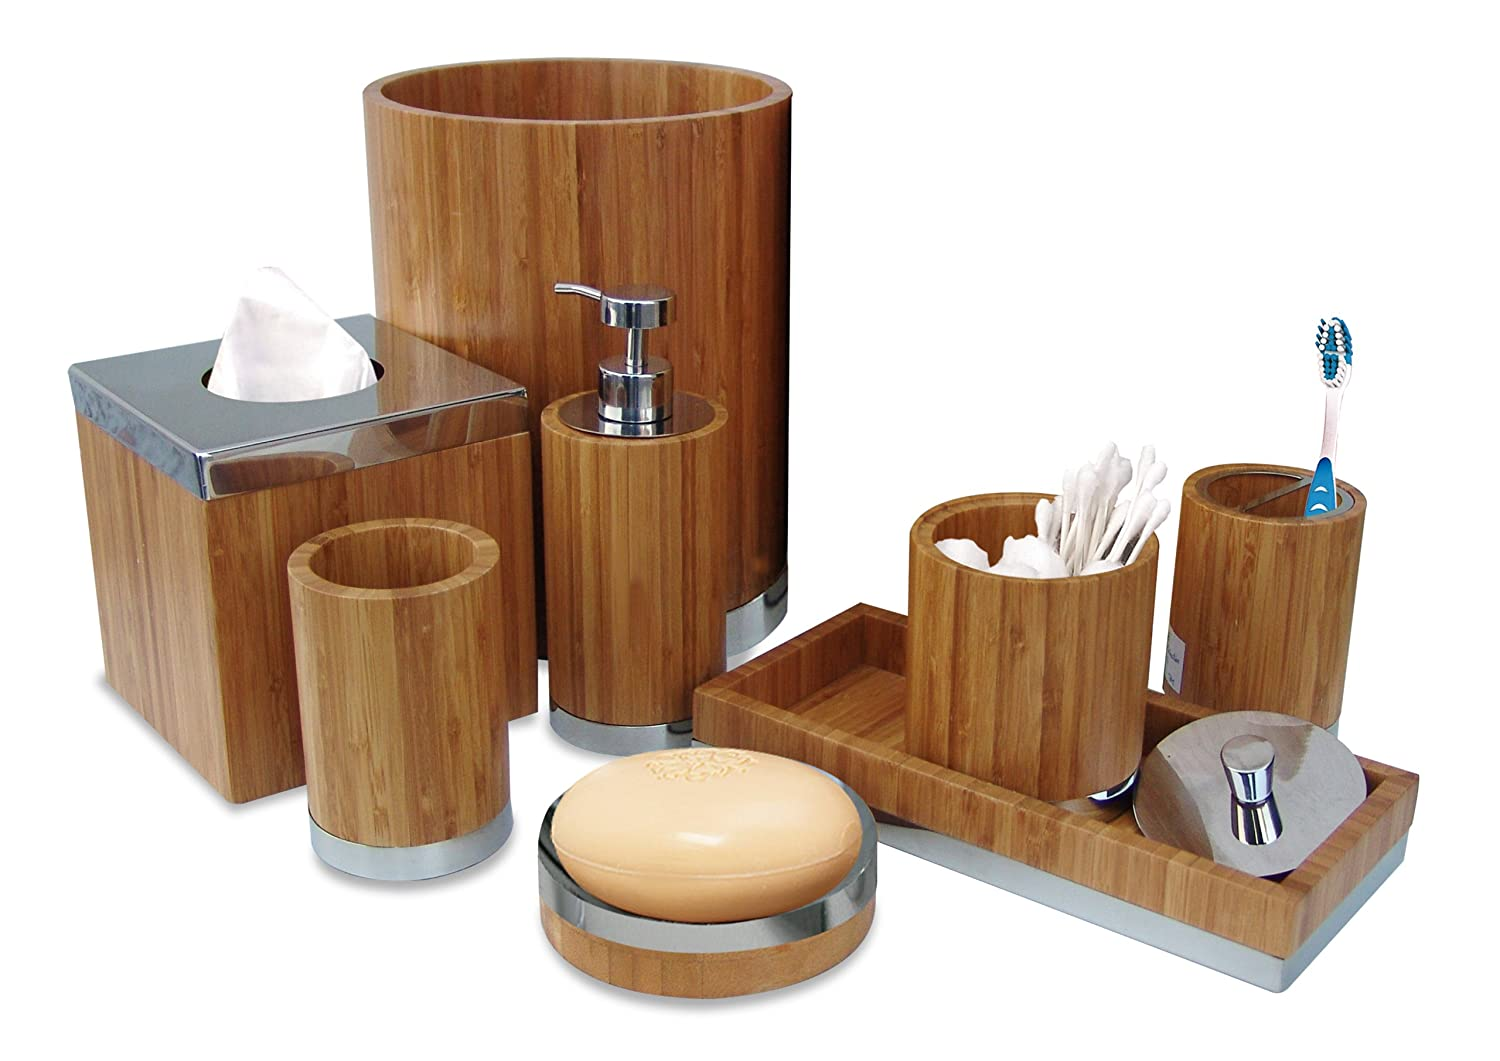 Amazon.com: nu steel Ageless Collection Bathroom Accessories Set,8 ...